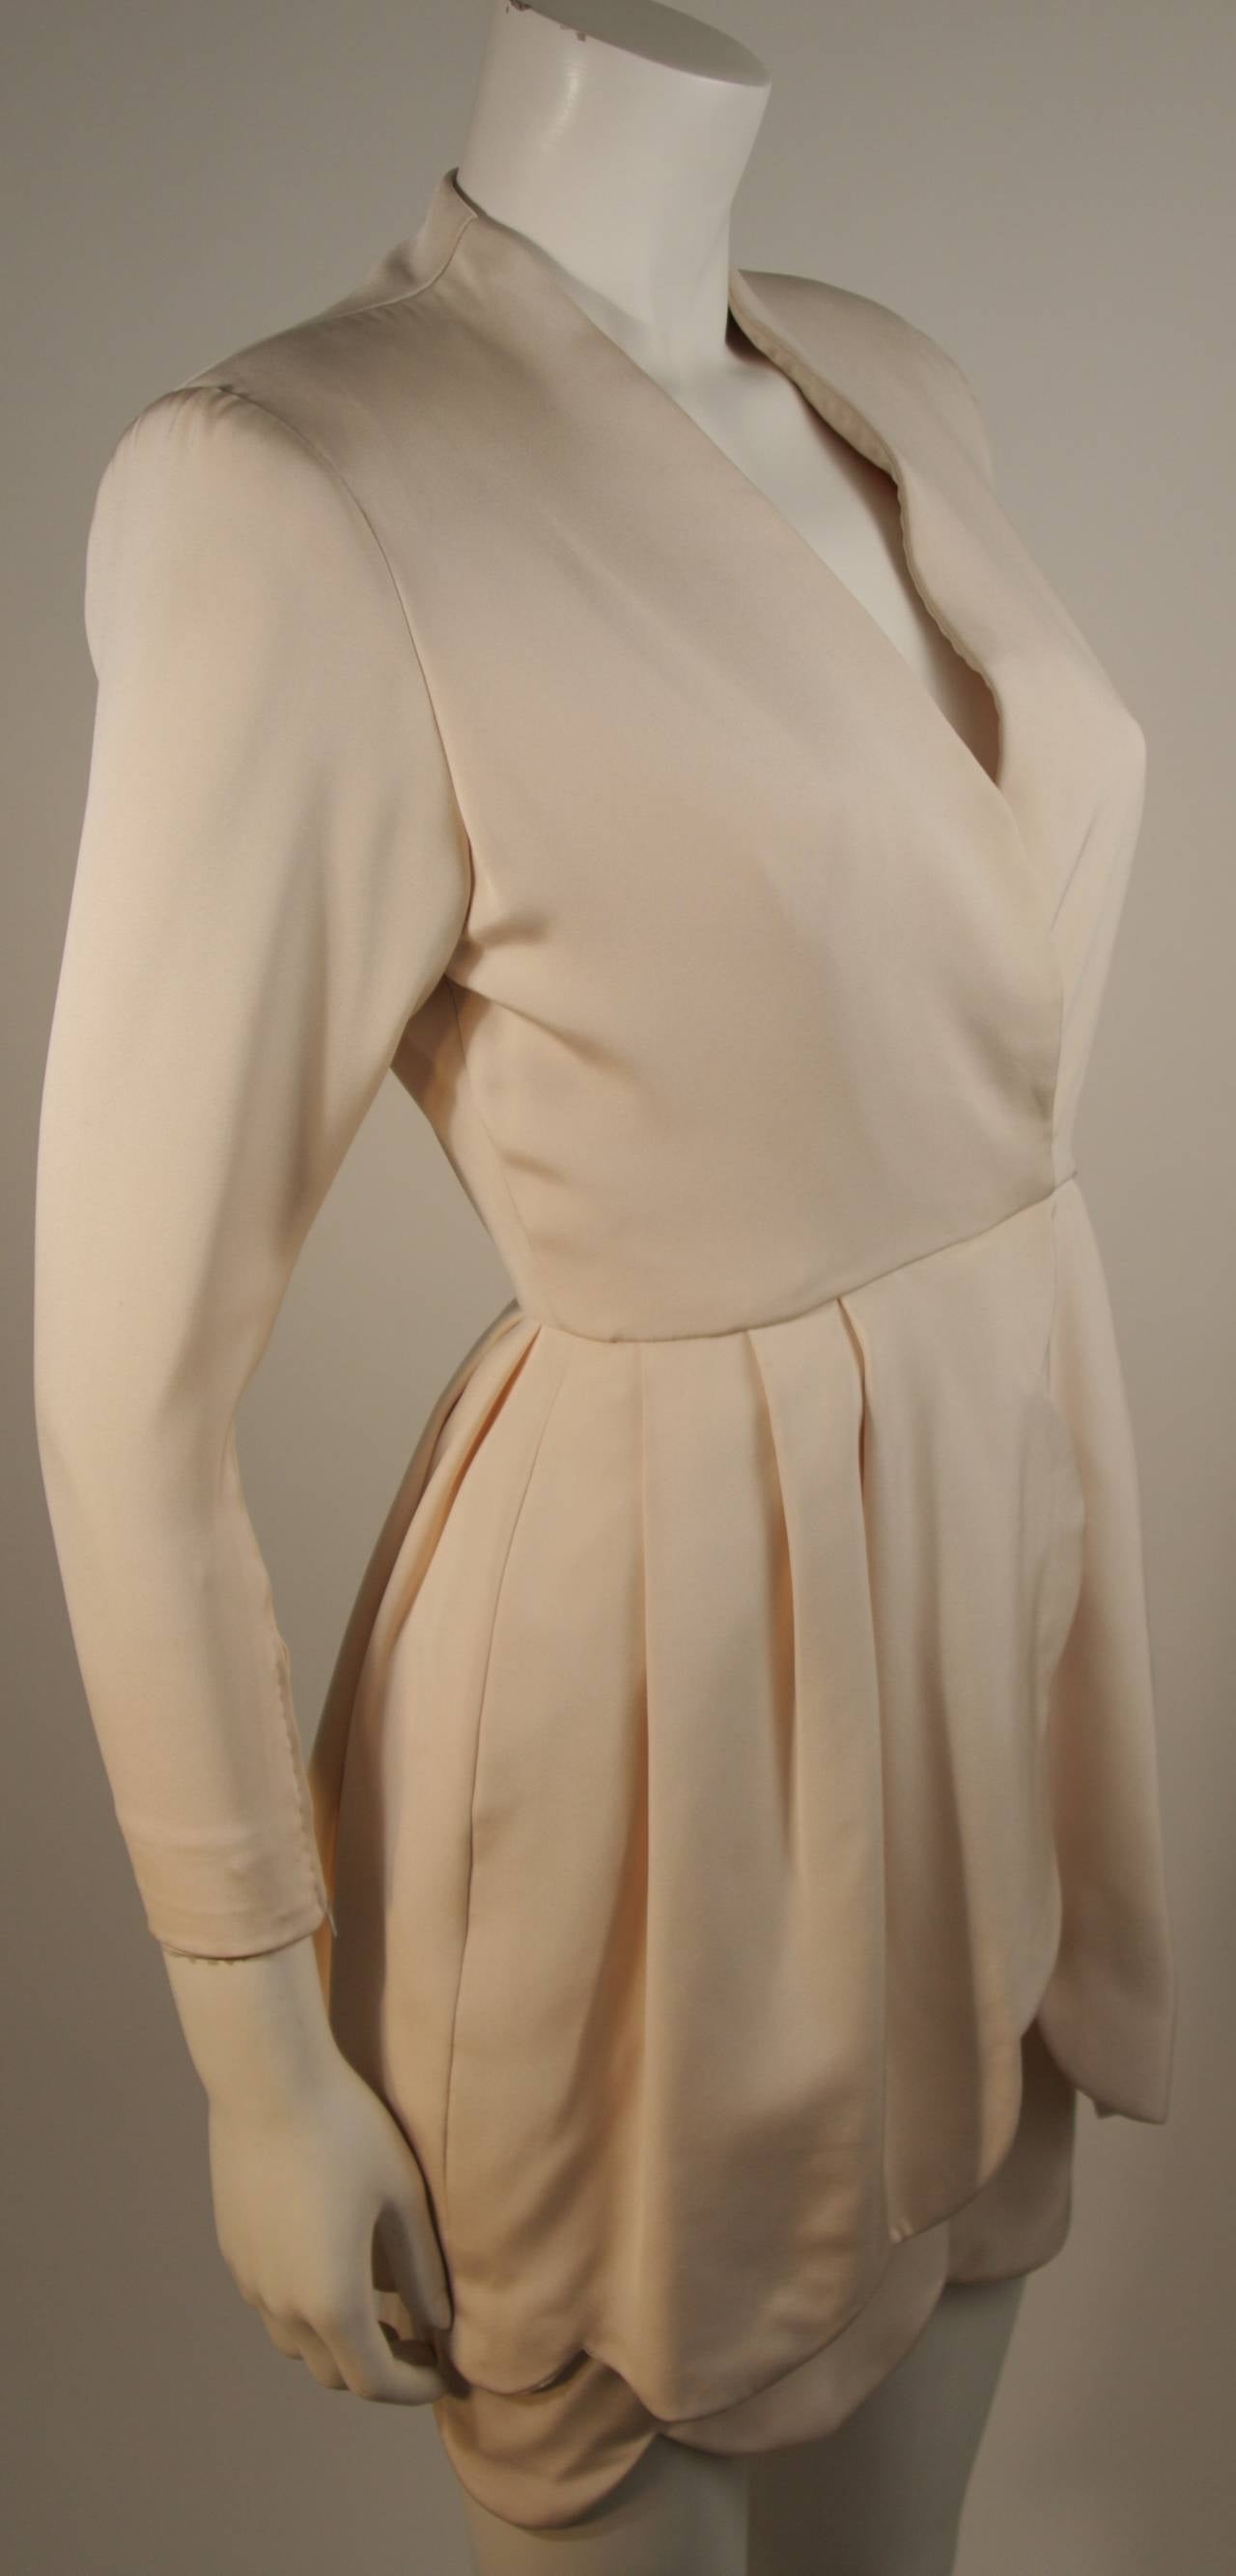 Attributed to Valentino Scallop Edge Cocktail Dress Size Small In Excellent Condition For Sale In Los Angeles, CA